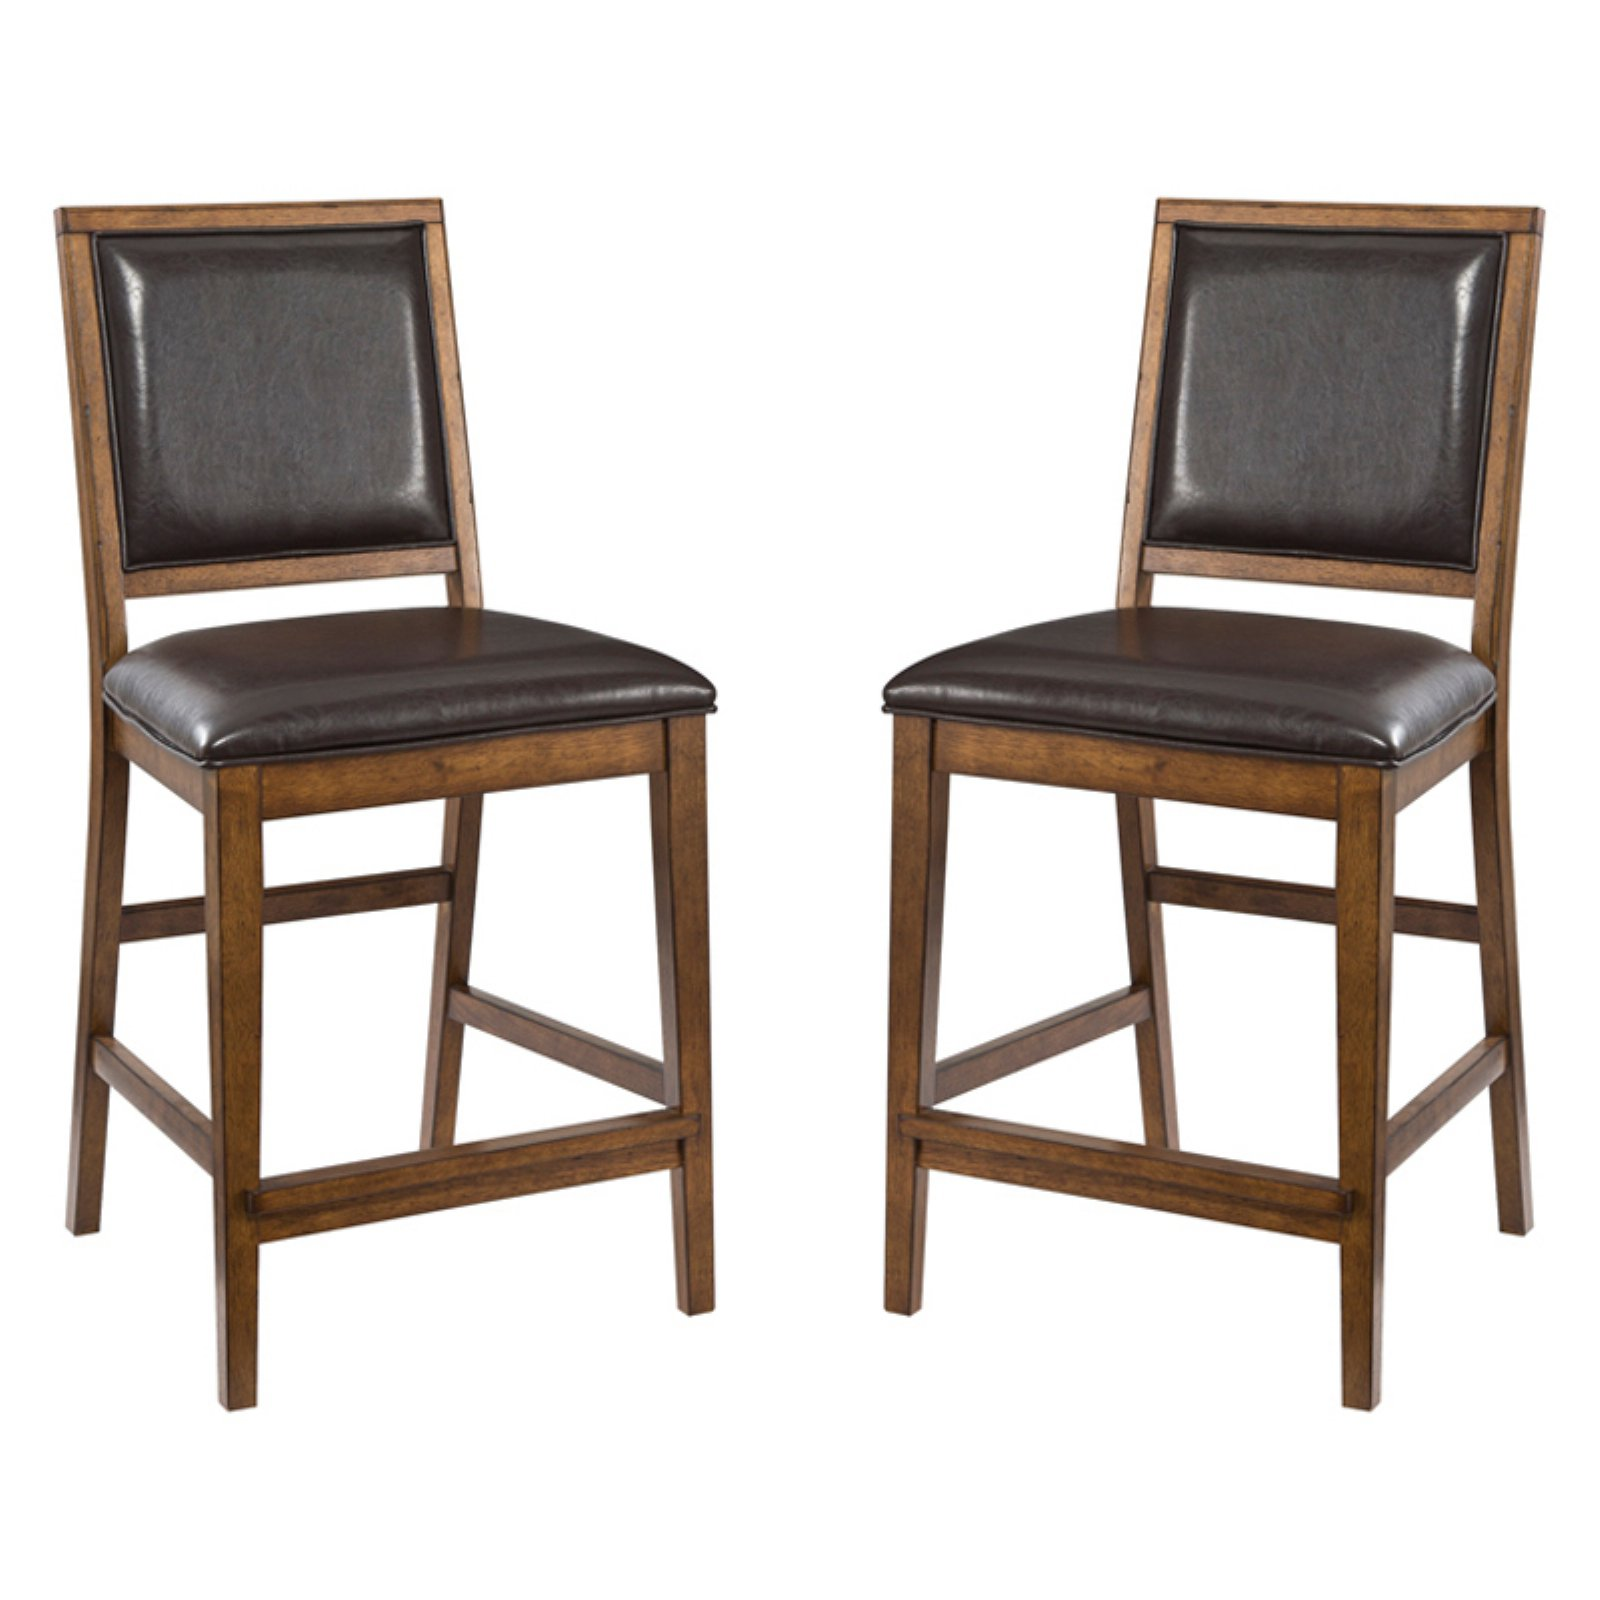 "Imagio Home by Intercon San Thomas 24"" Upholstered Barstool, Set of 2, Warm Brandy"